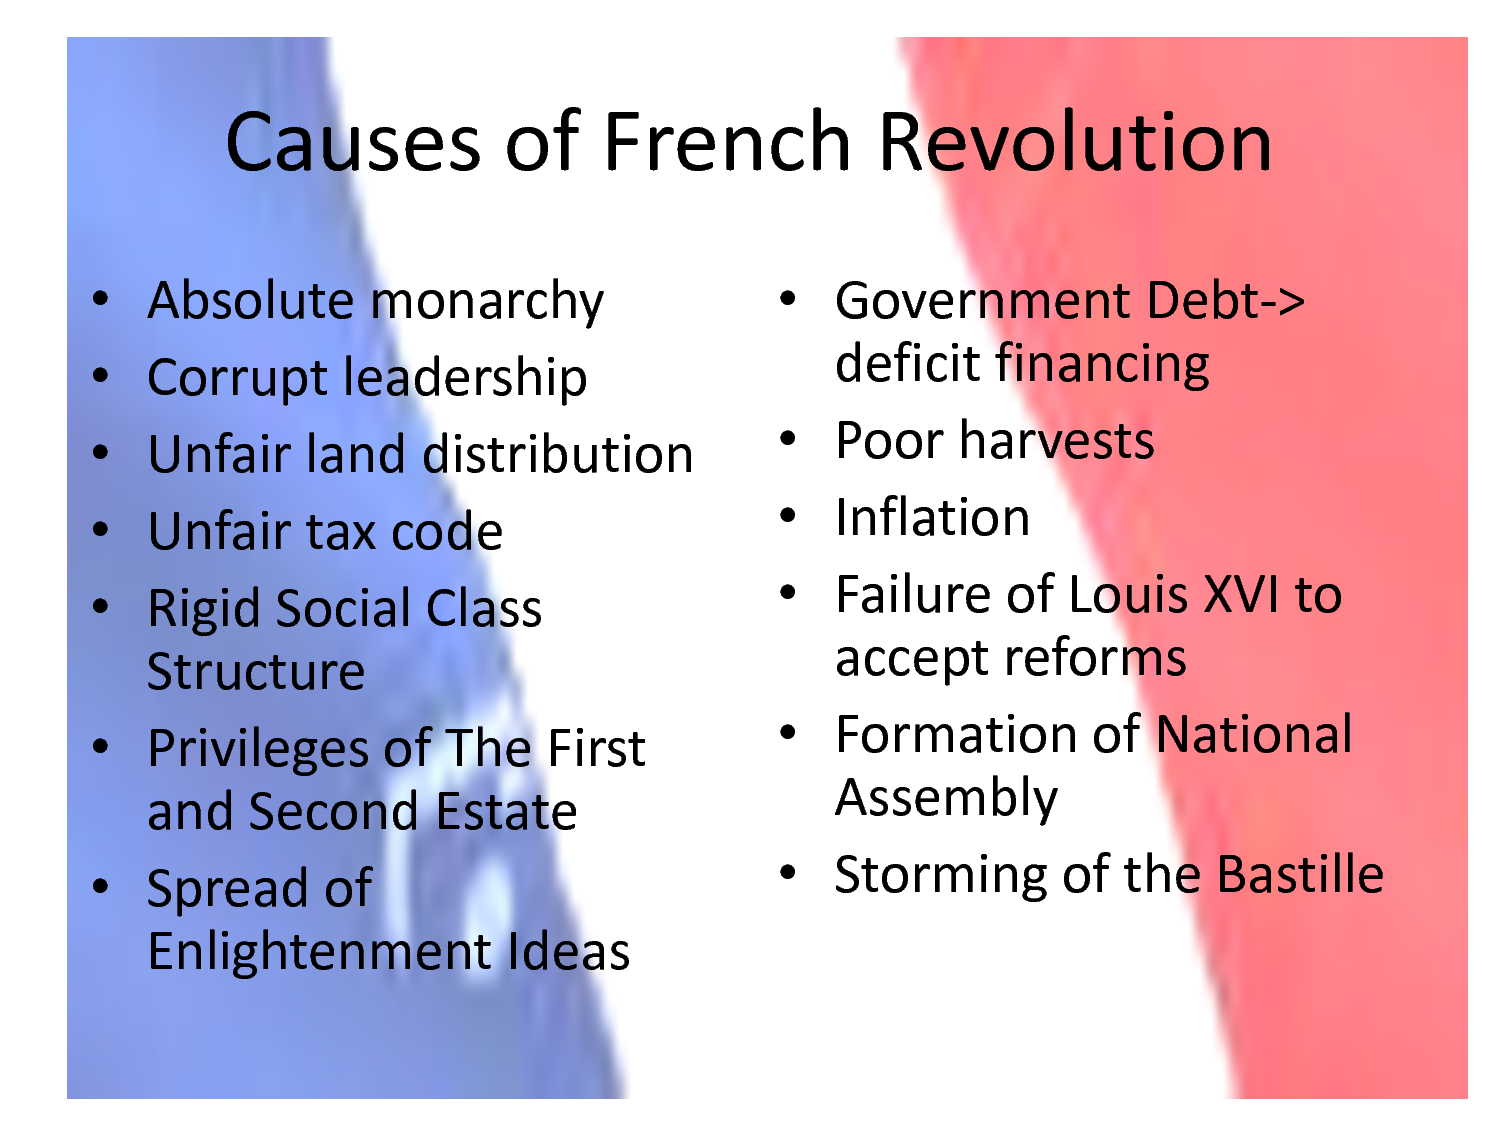 Causes of French Revolution (With images) French